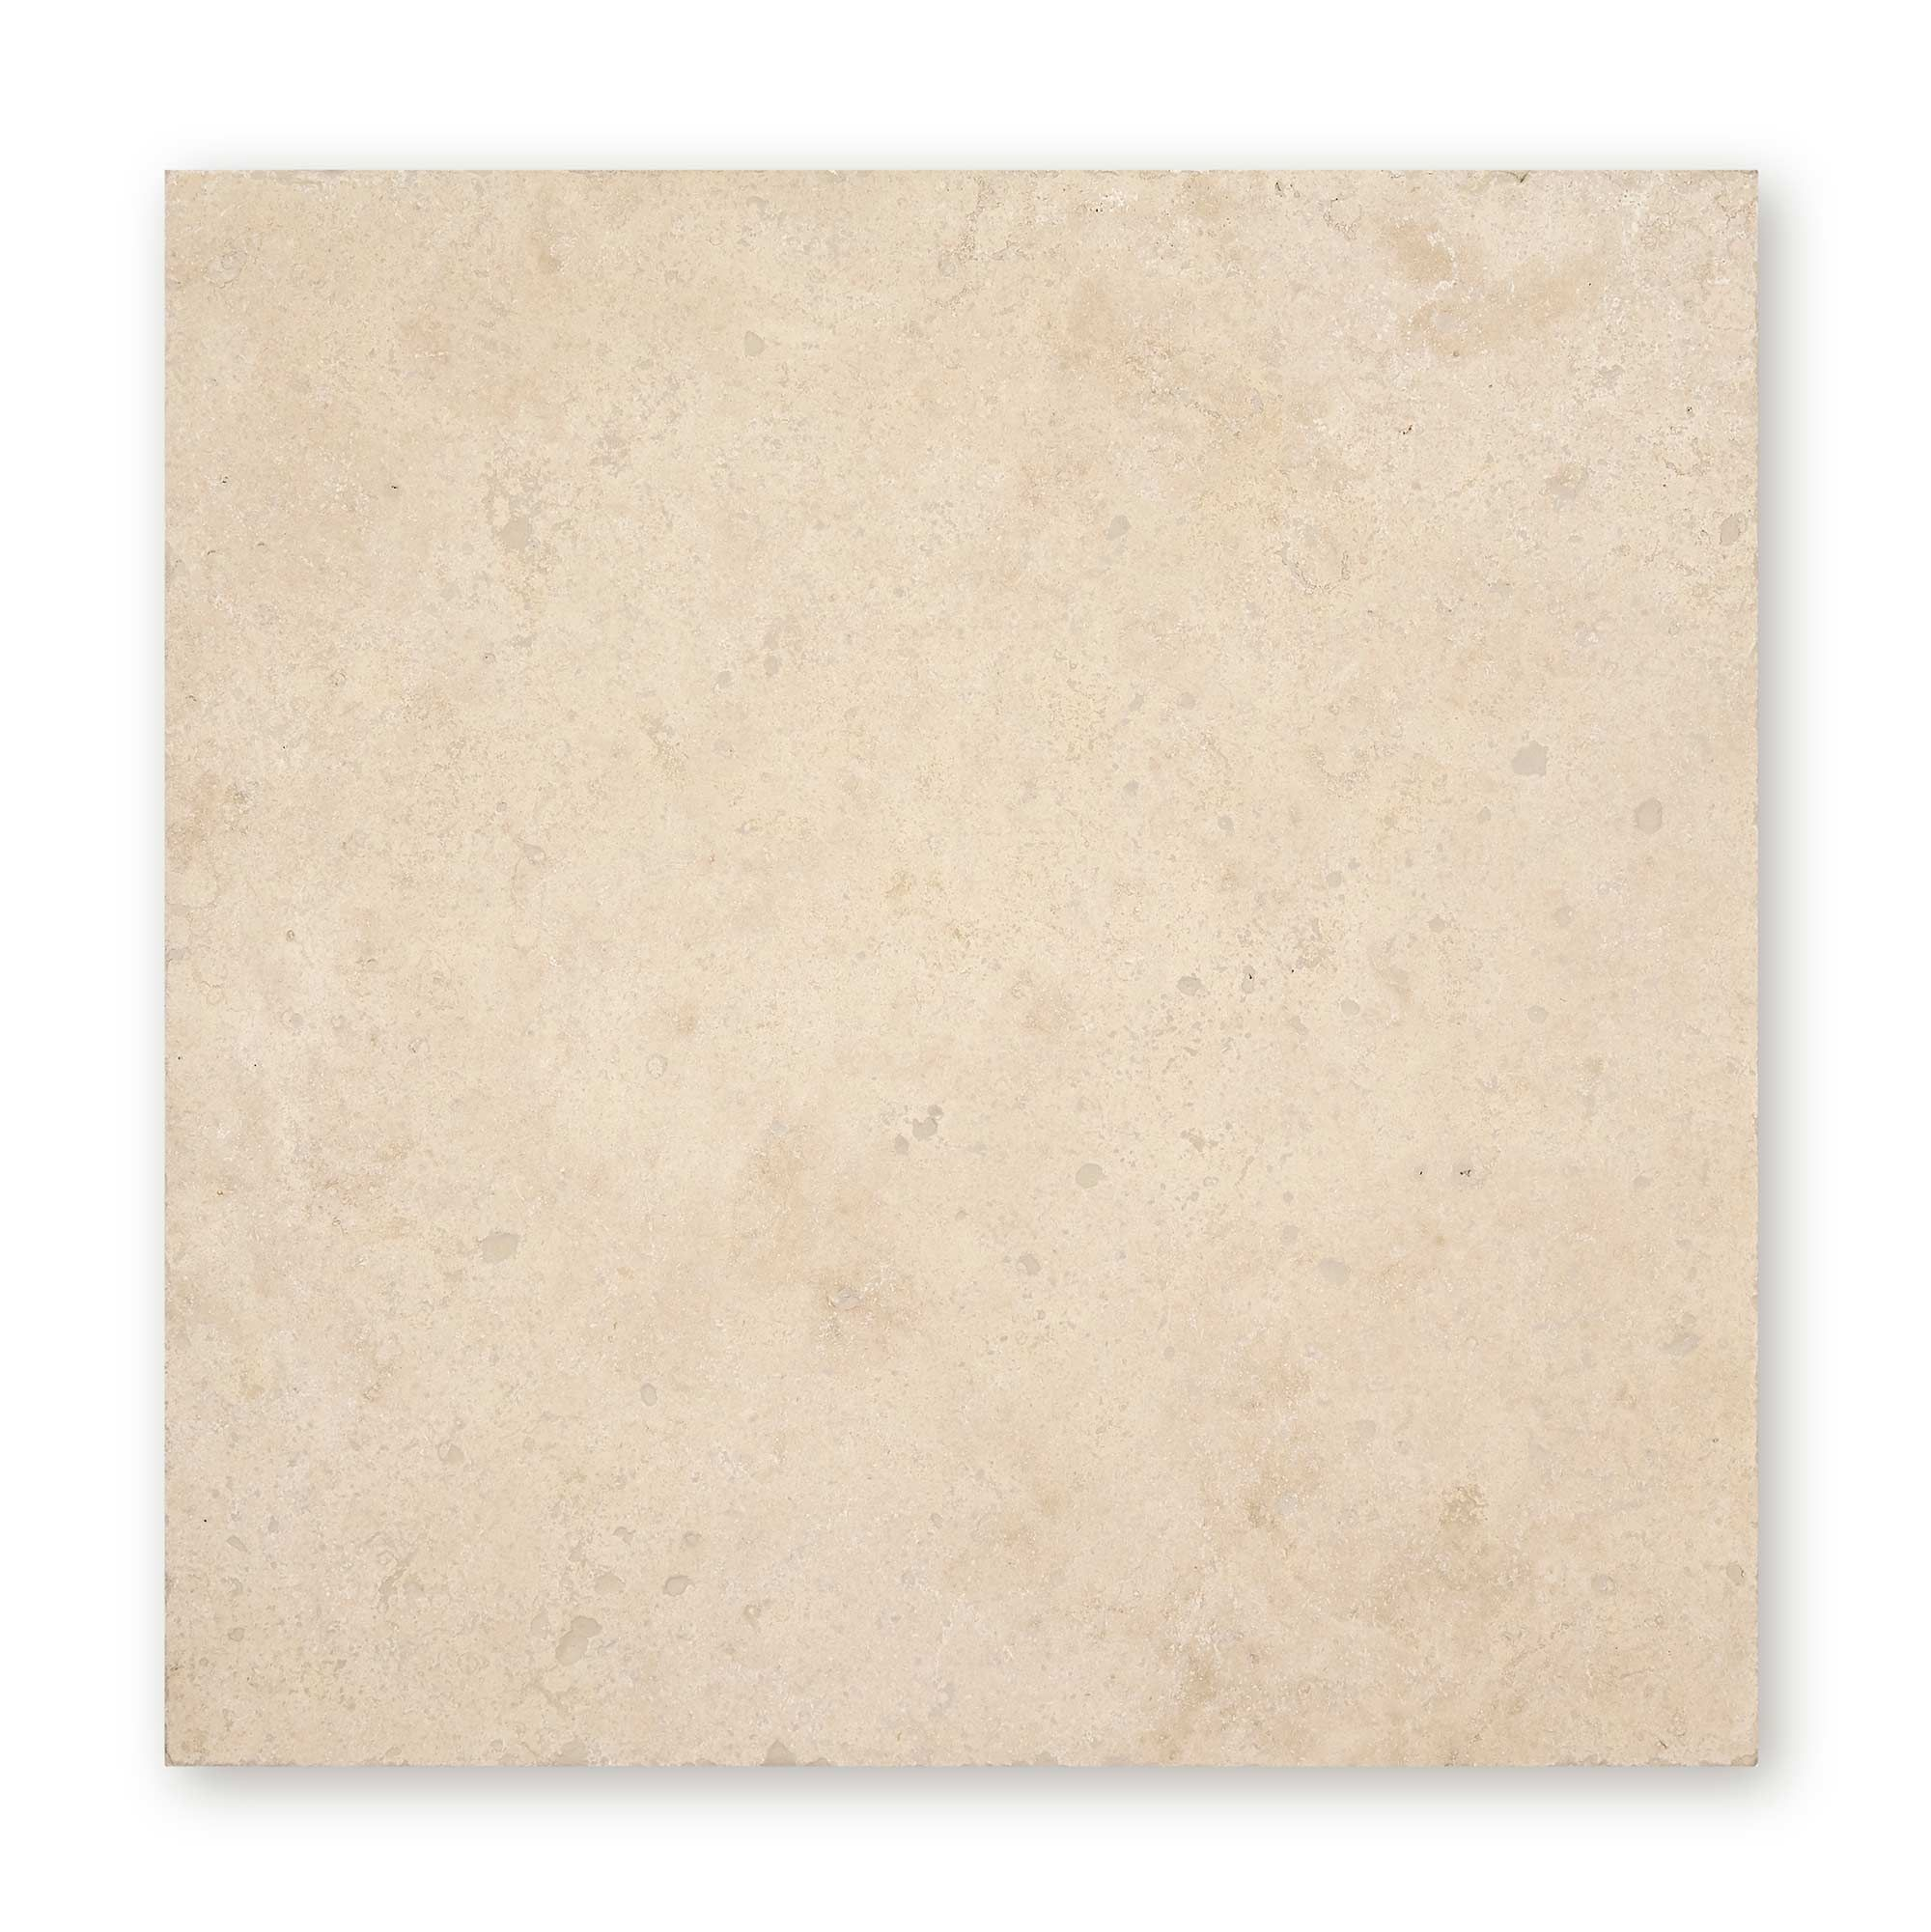 Orient 40x40 Tumbled Edge, Tumbled and Unfilled